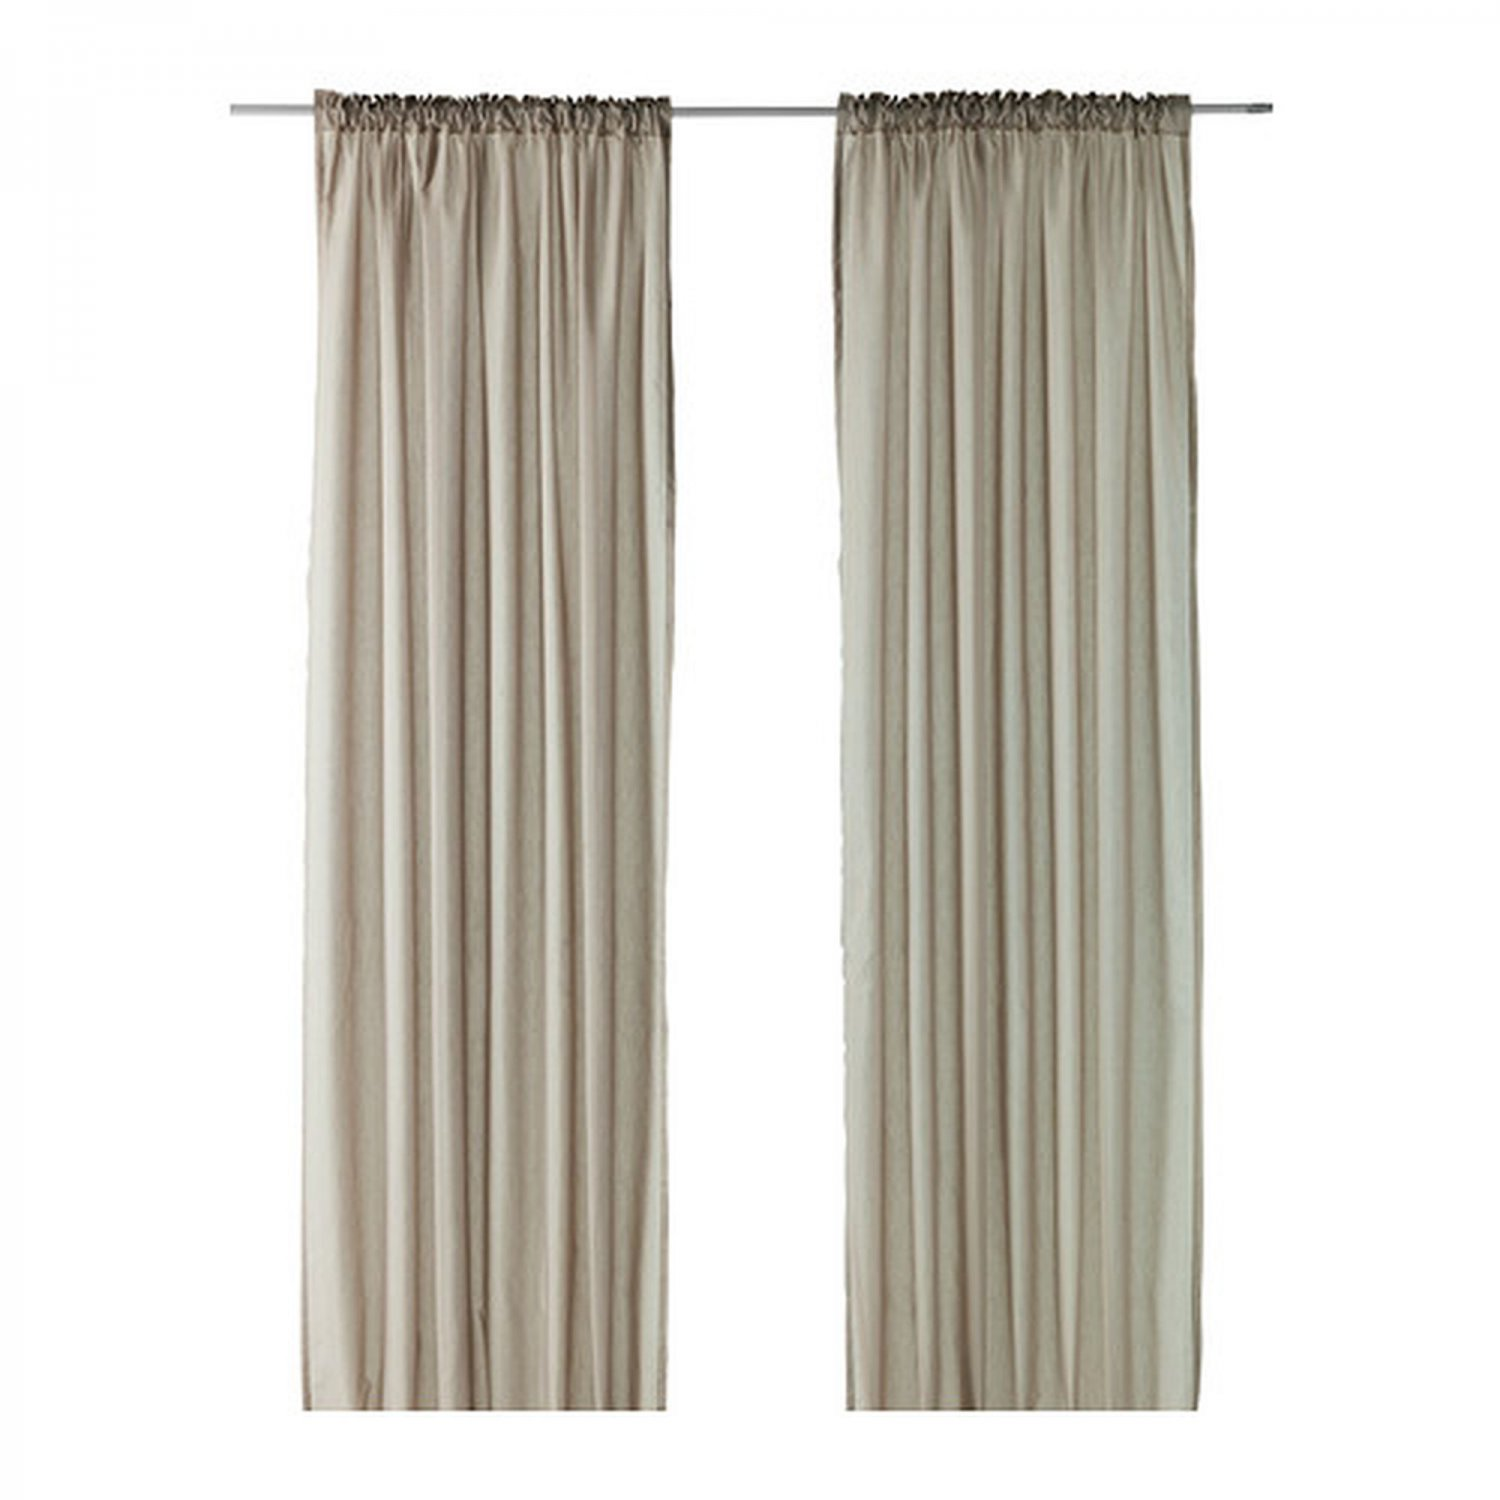 Curtain Ikea Ikea Vivan Curtains Drapes Beige 2 Panels Mushroom Taupe